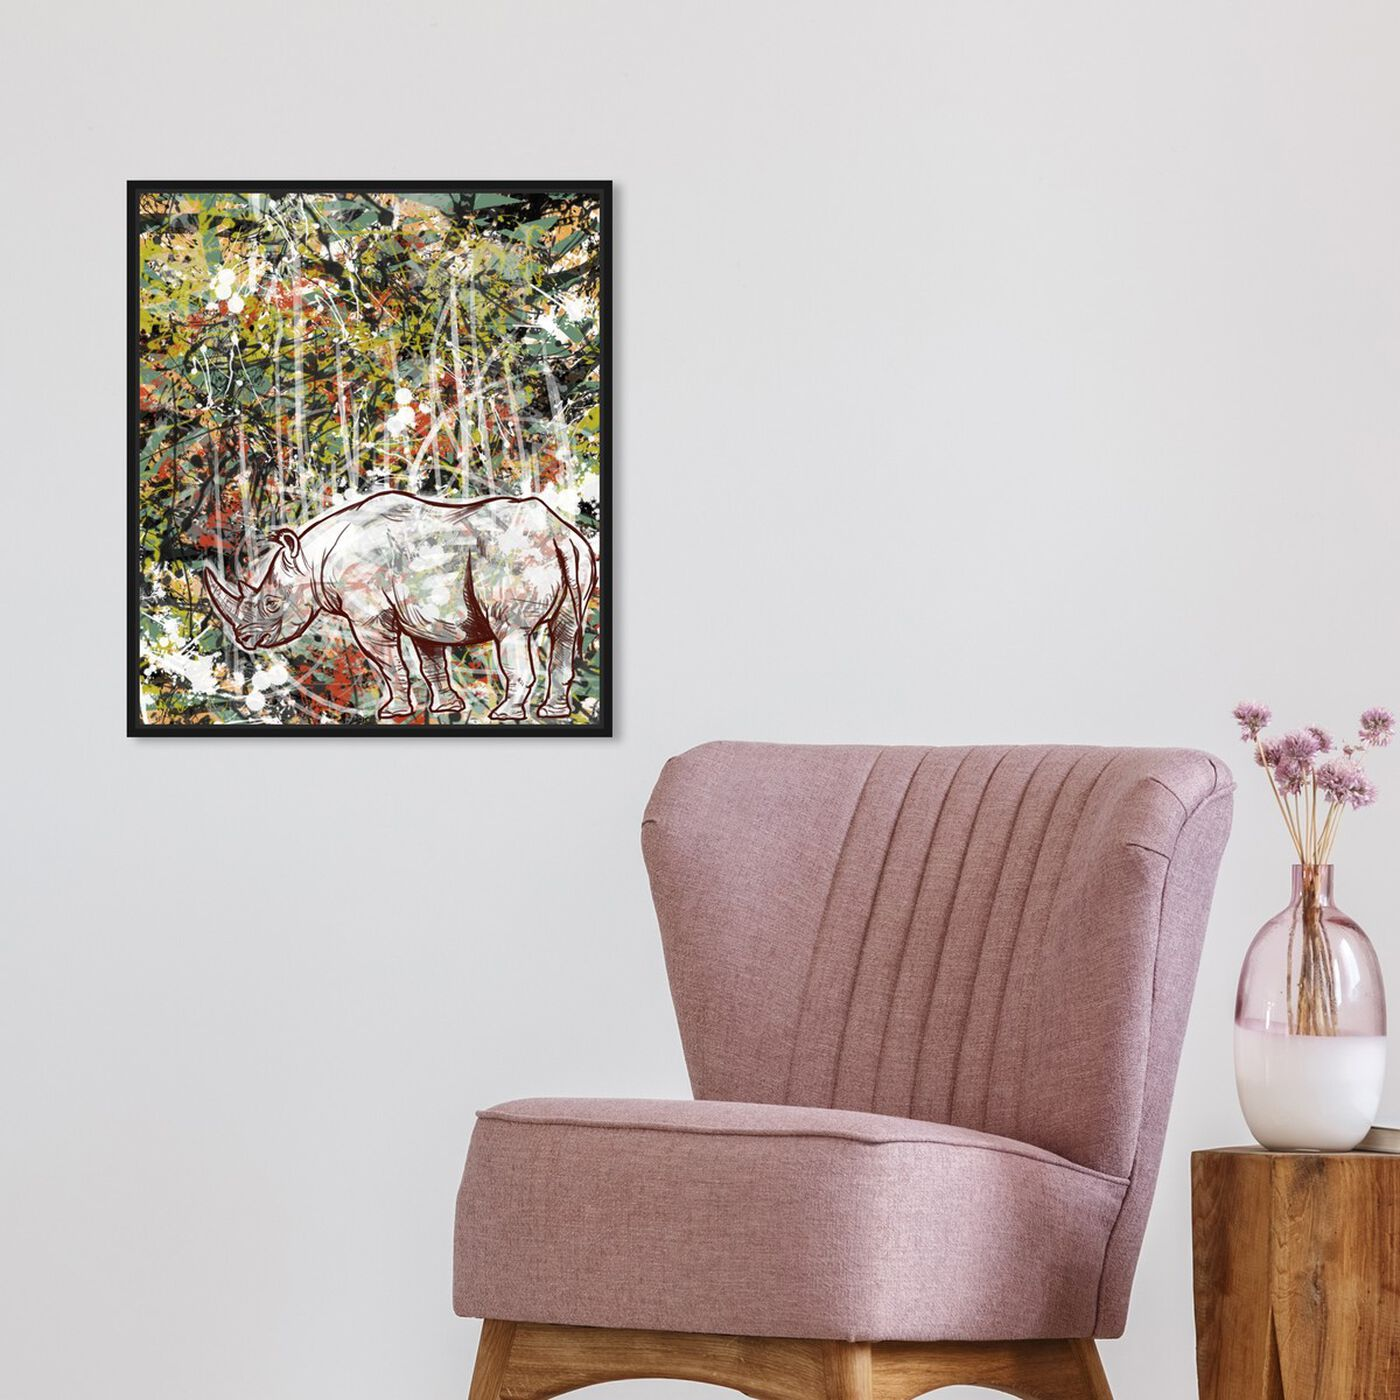 Hanging view of Wild featuring animals and zoo and wild animals art.